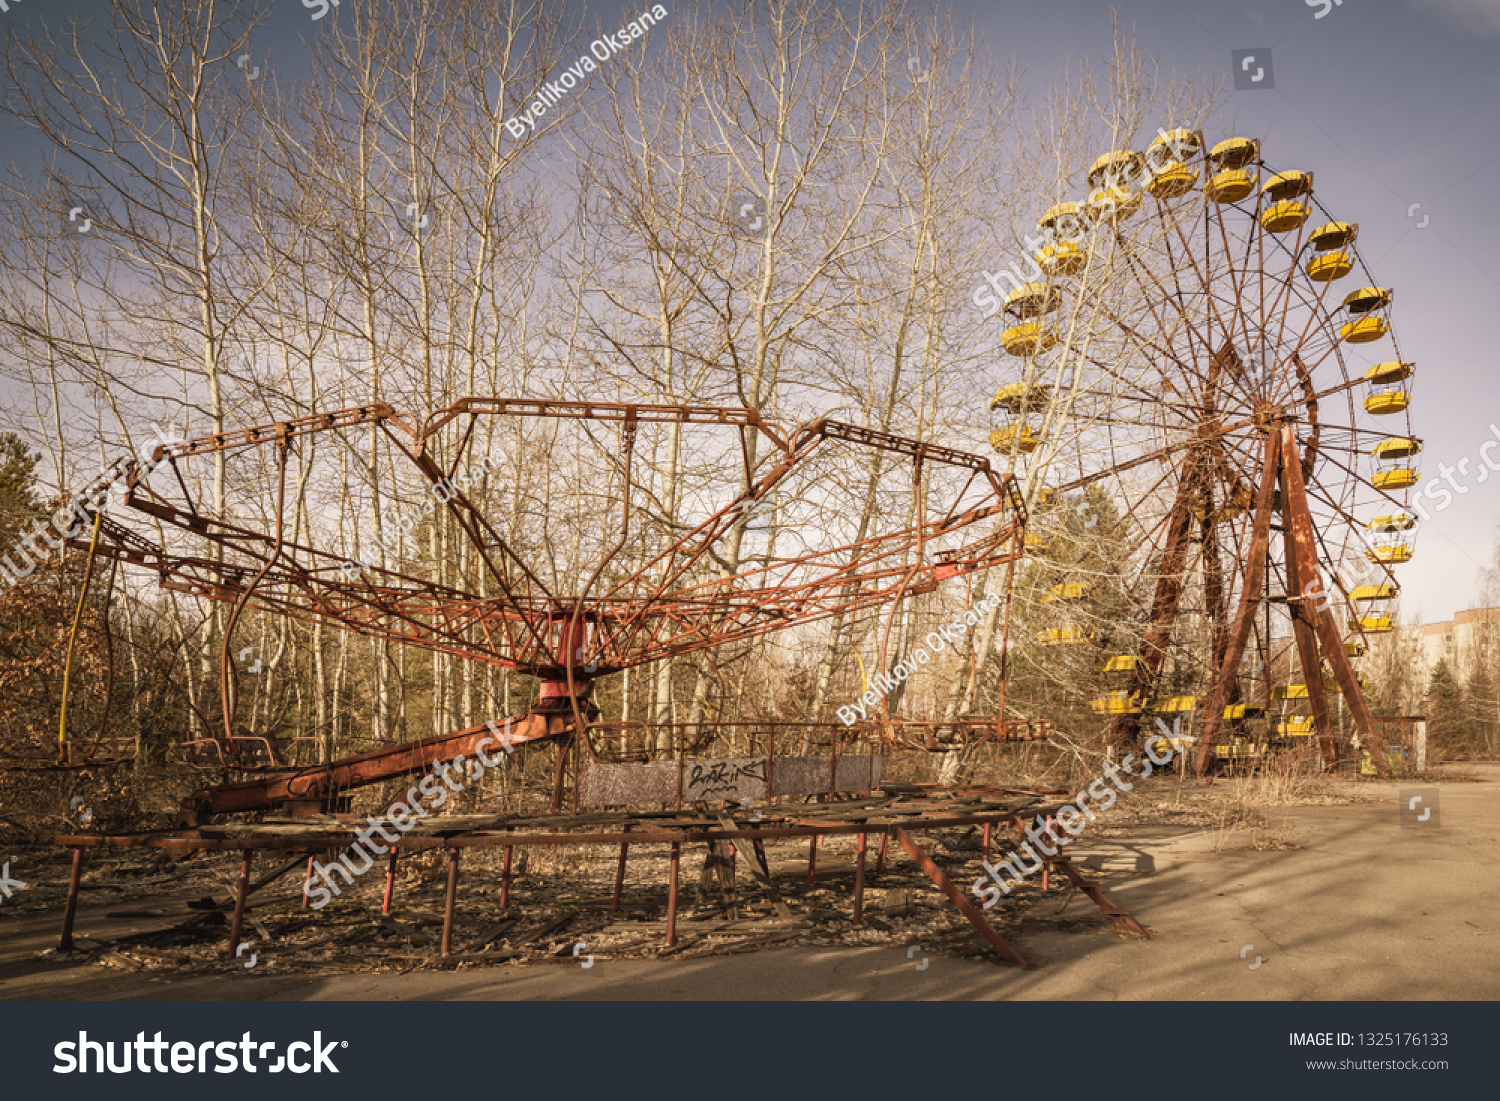 Abandoned amusement park in the center of the city of Pripyat, in Chernobyl Exclusion Zone, Ukraine #1325176133